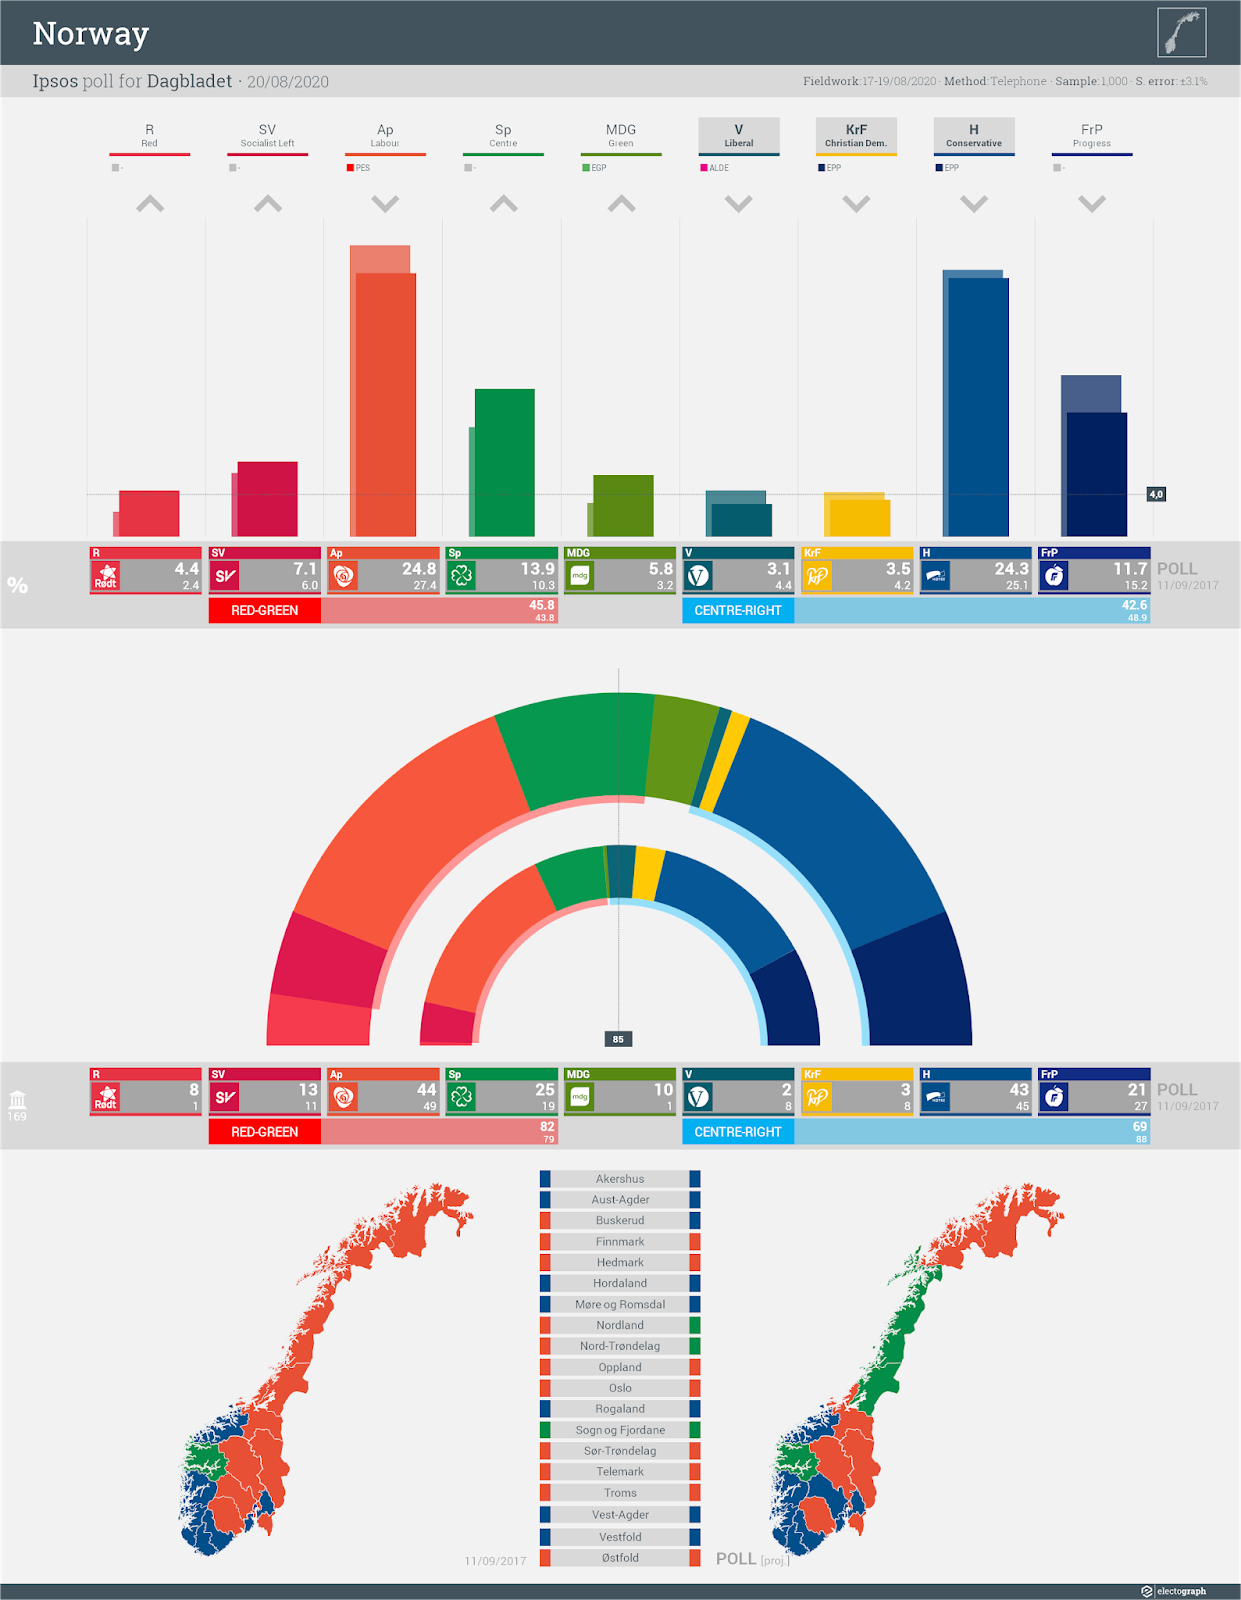 NORWAY: Ipsos poll chart for Dagbladet, 20 August 2020